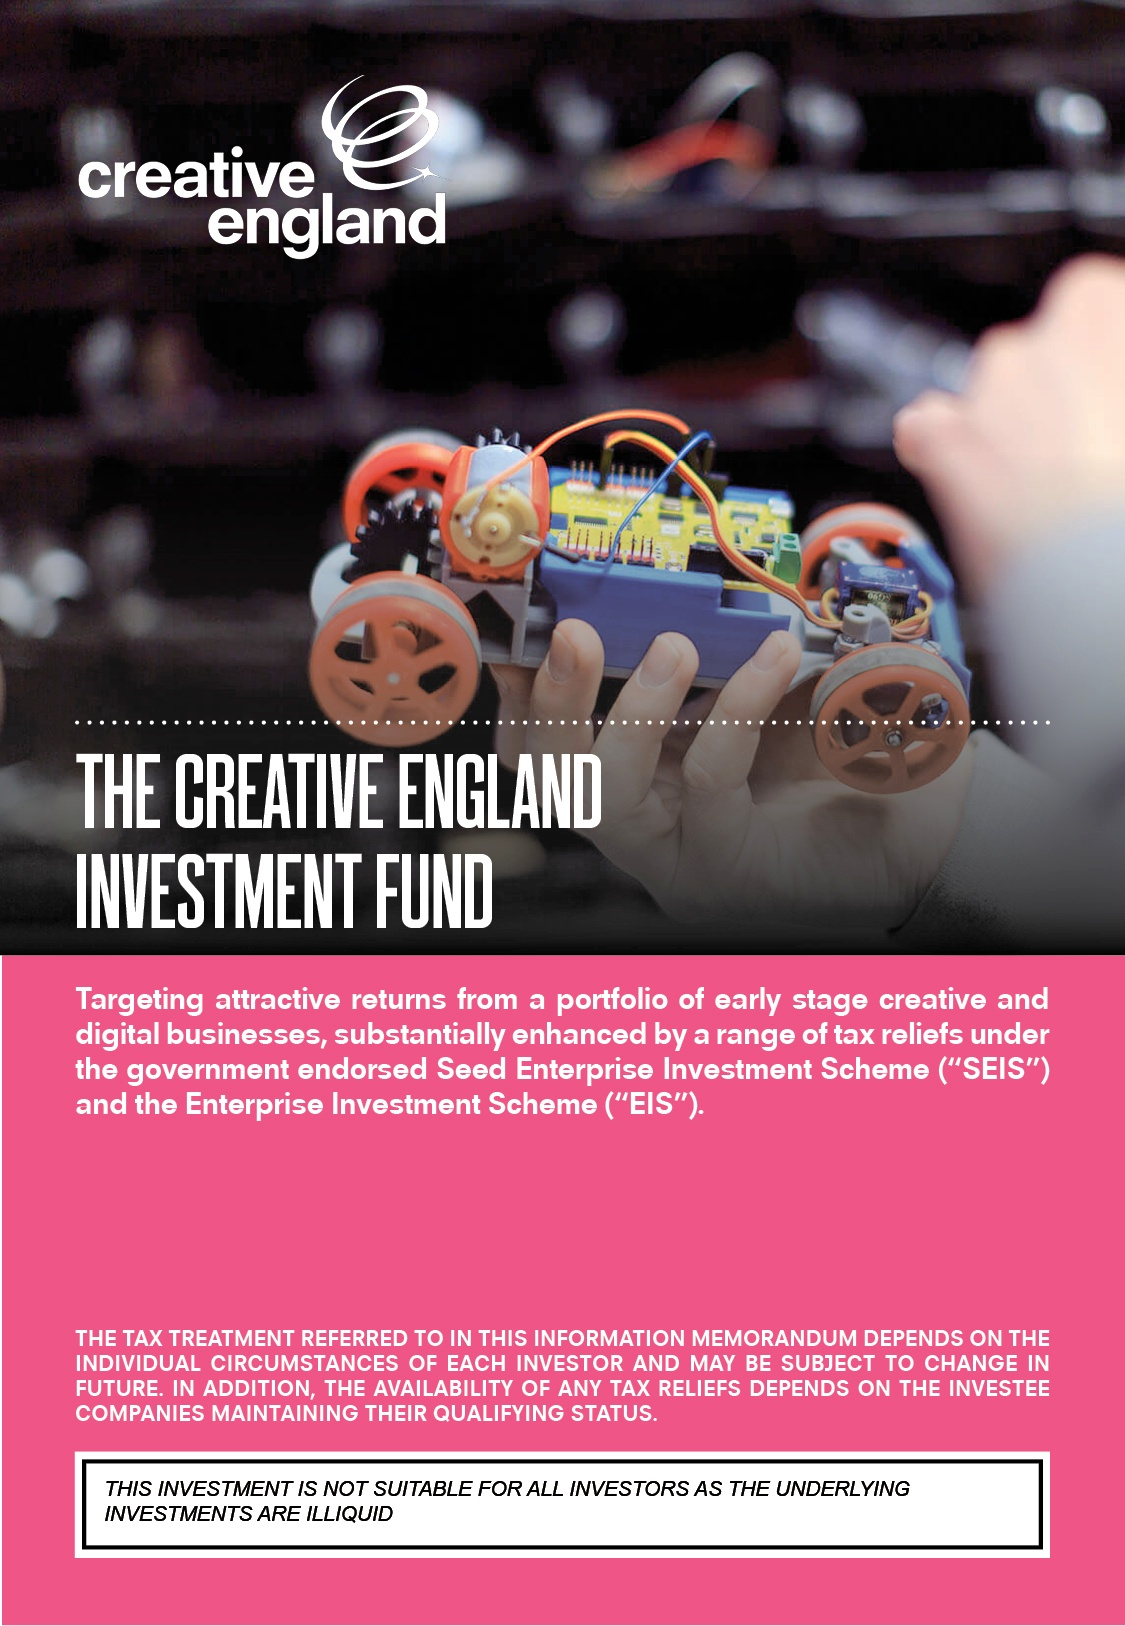 The Creative England Investment Fund